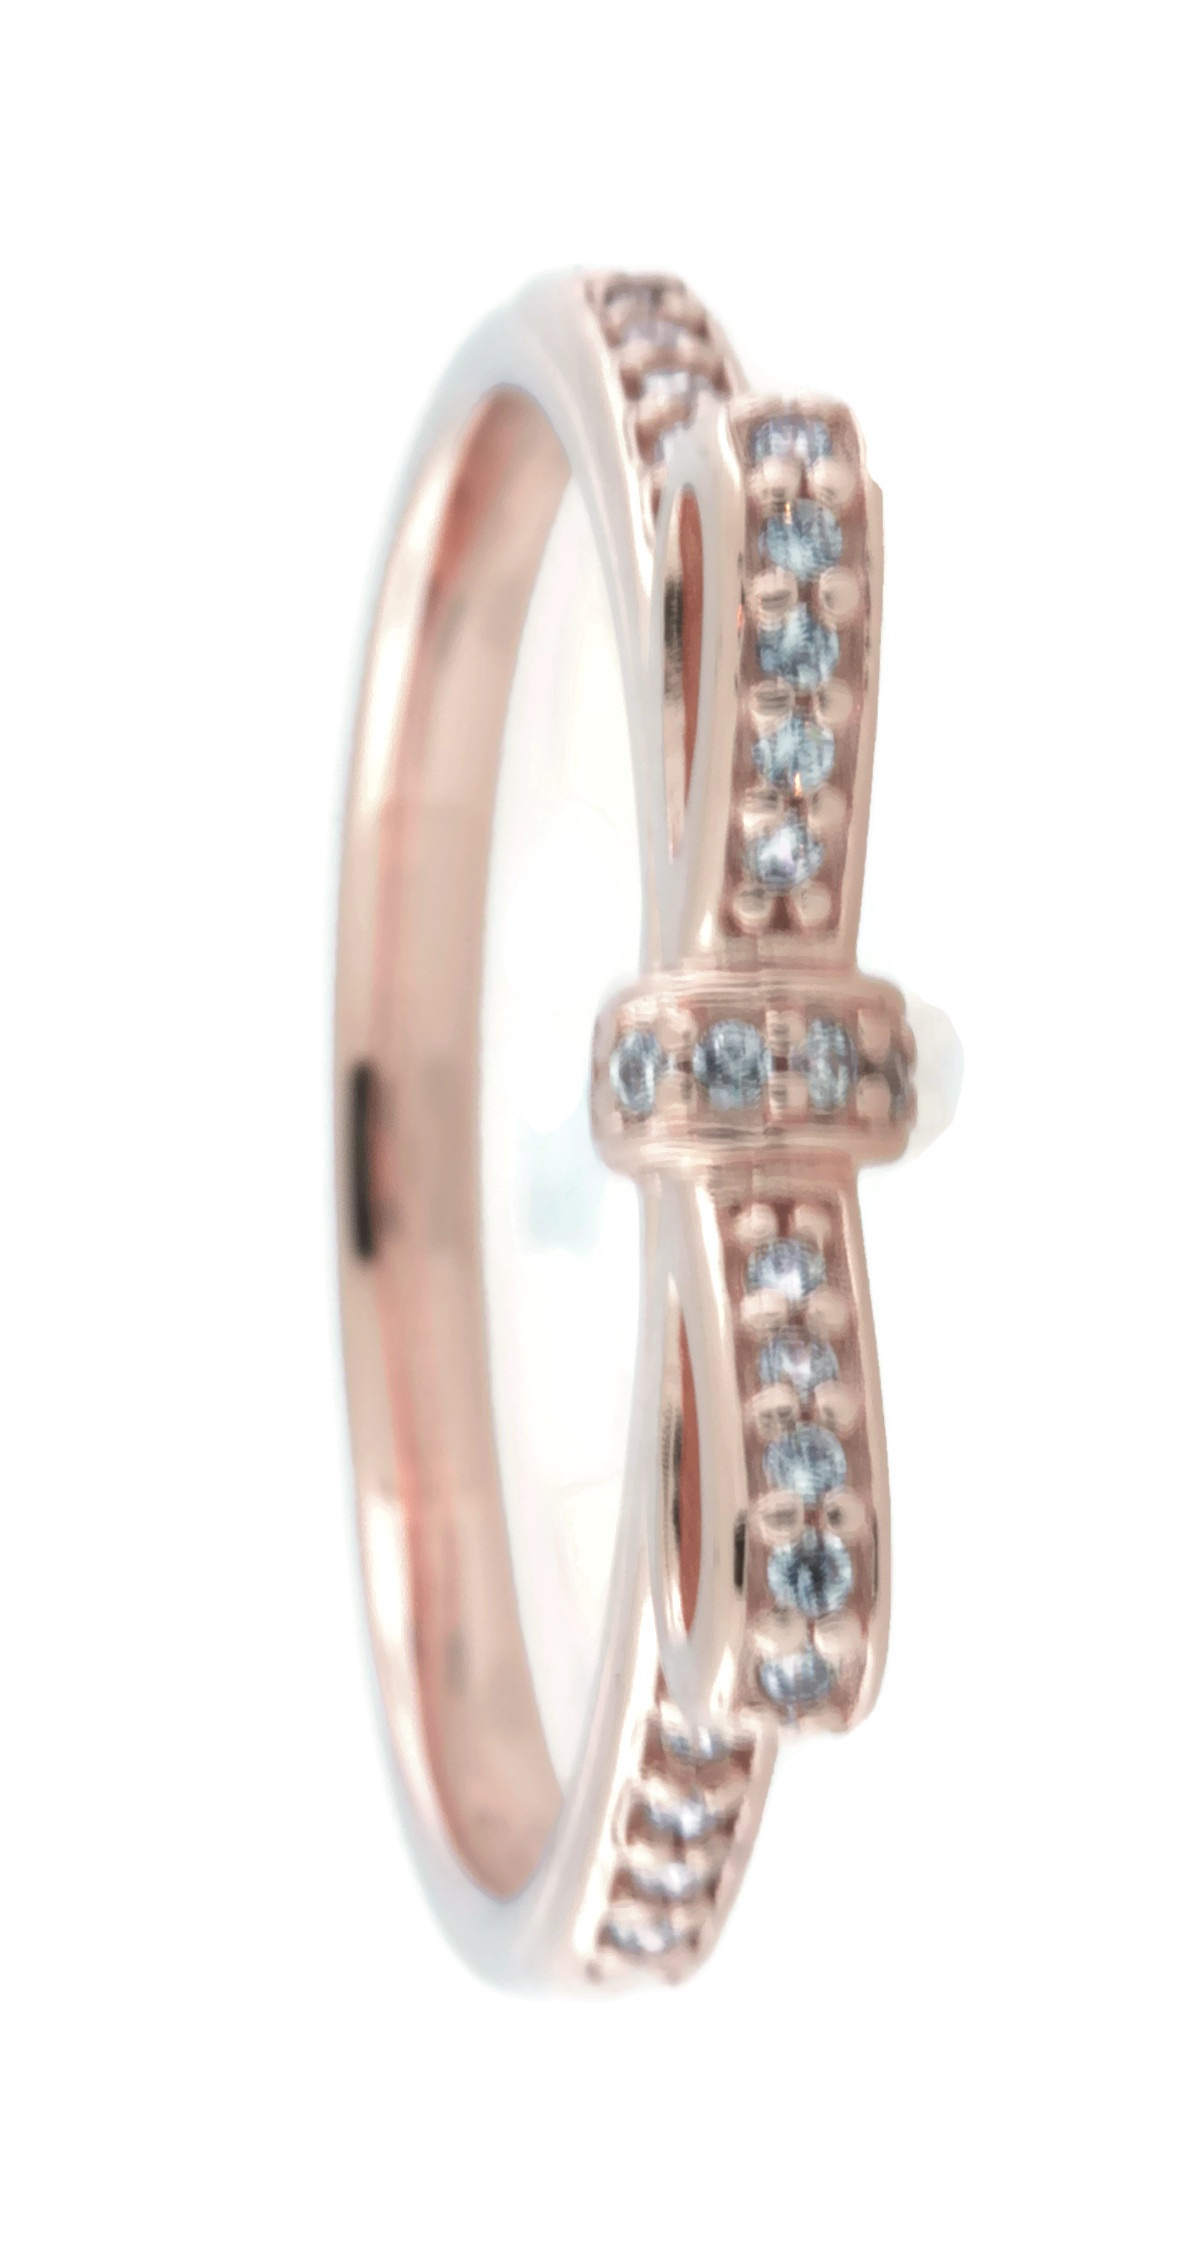 Details About Pandora Sparkling Bow Ring, Pandora Rose And Clear Cz, 180906Cz (52) Pertaining To Most Recent Classic Bow Rings (View 22 of 25)